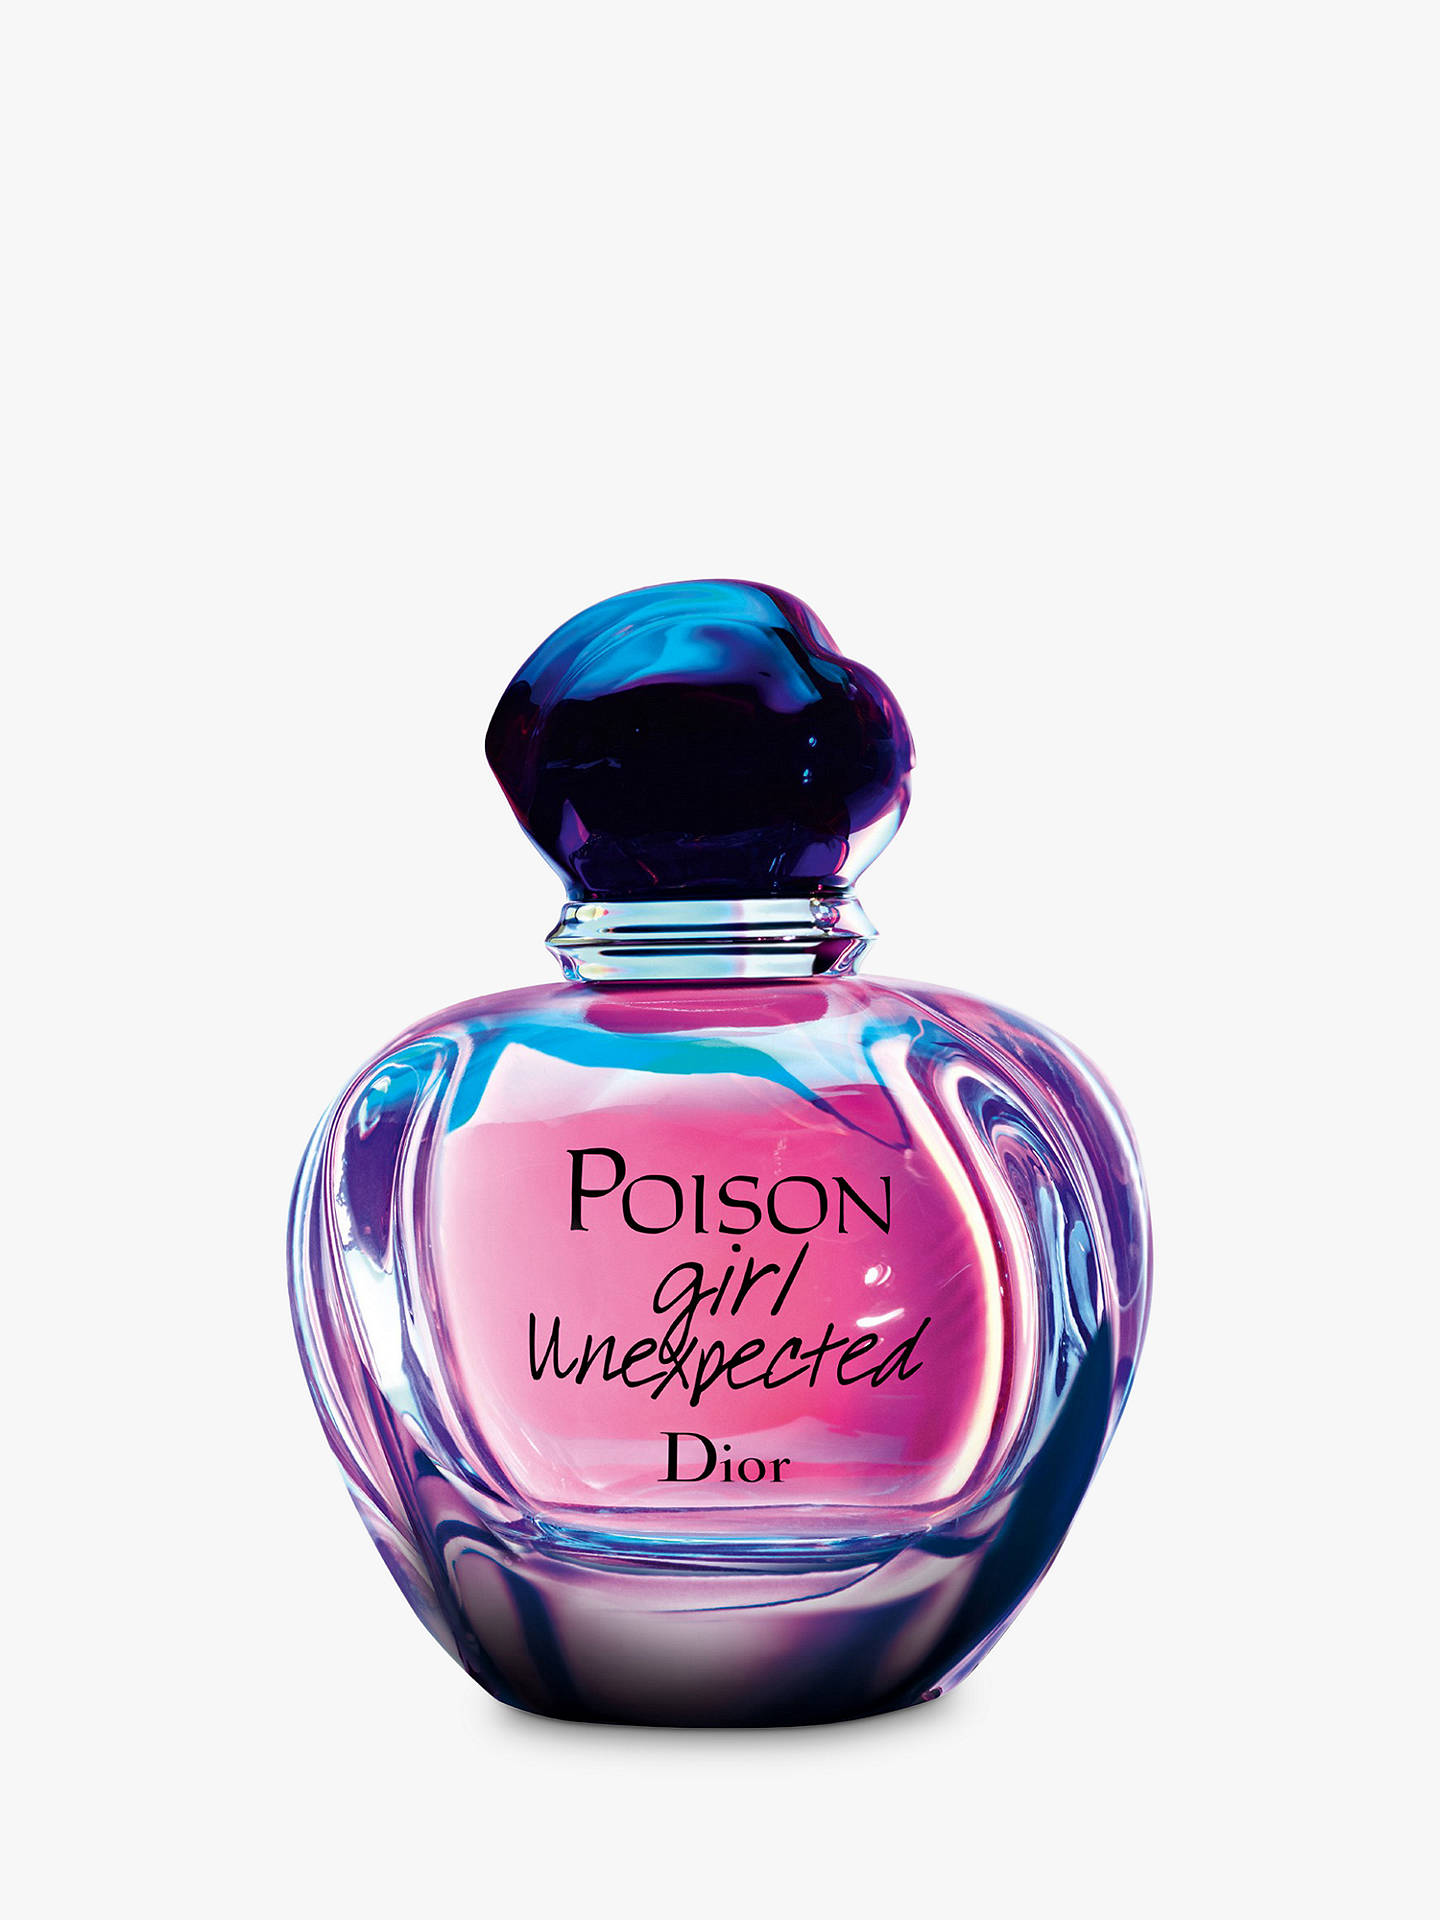 BuyDior Poison Girl Unexpected Eau de Toilette, 50ml Online at  johnlewis.com ... 550a4651a5da